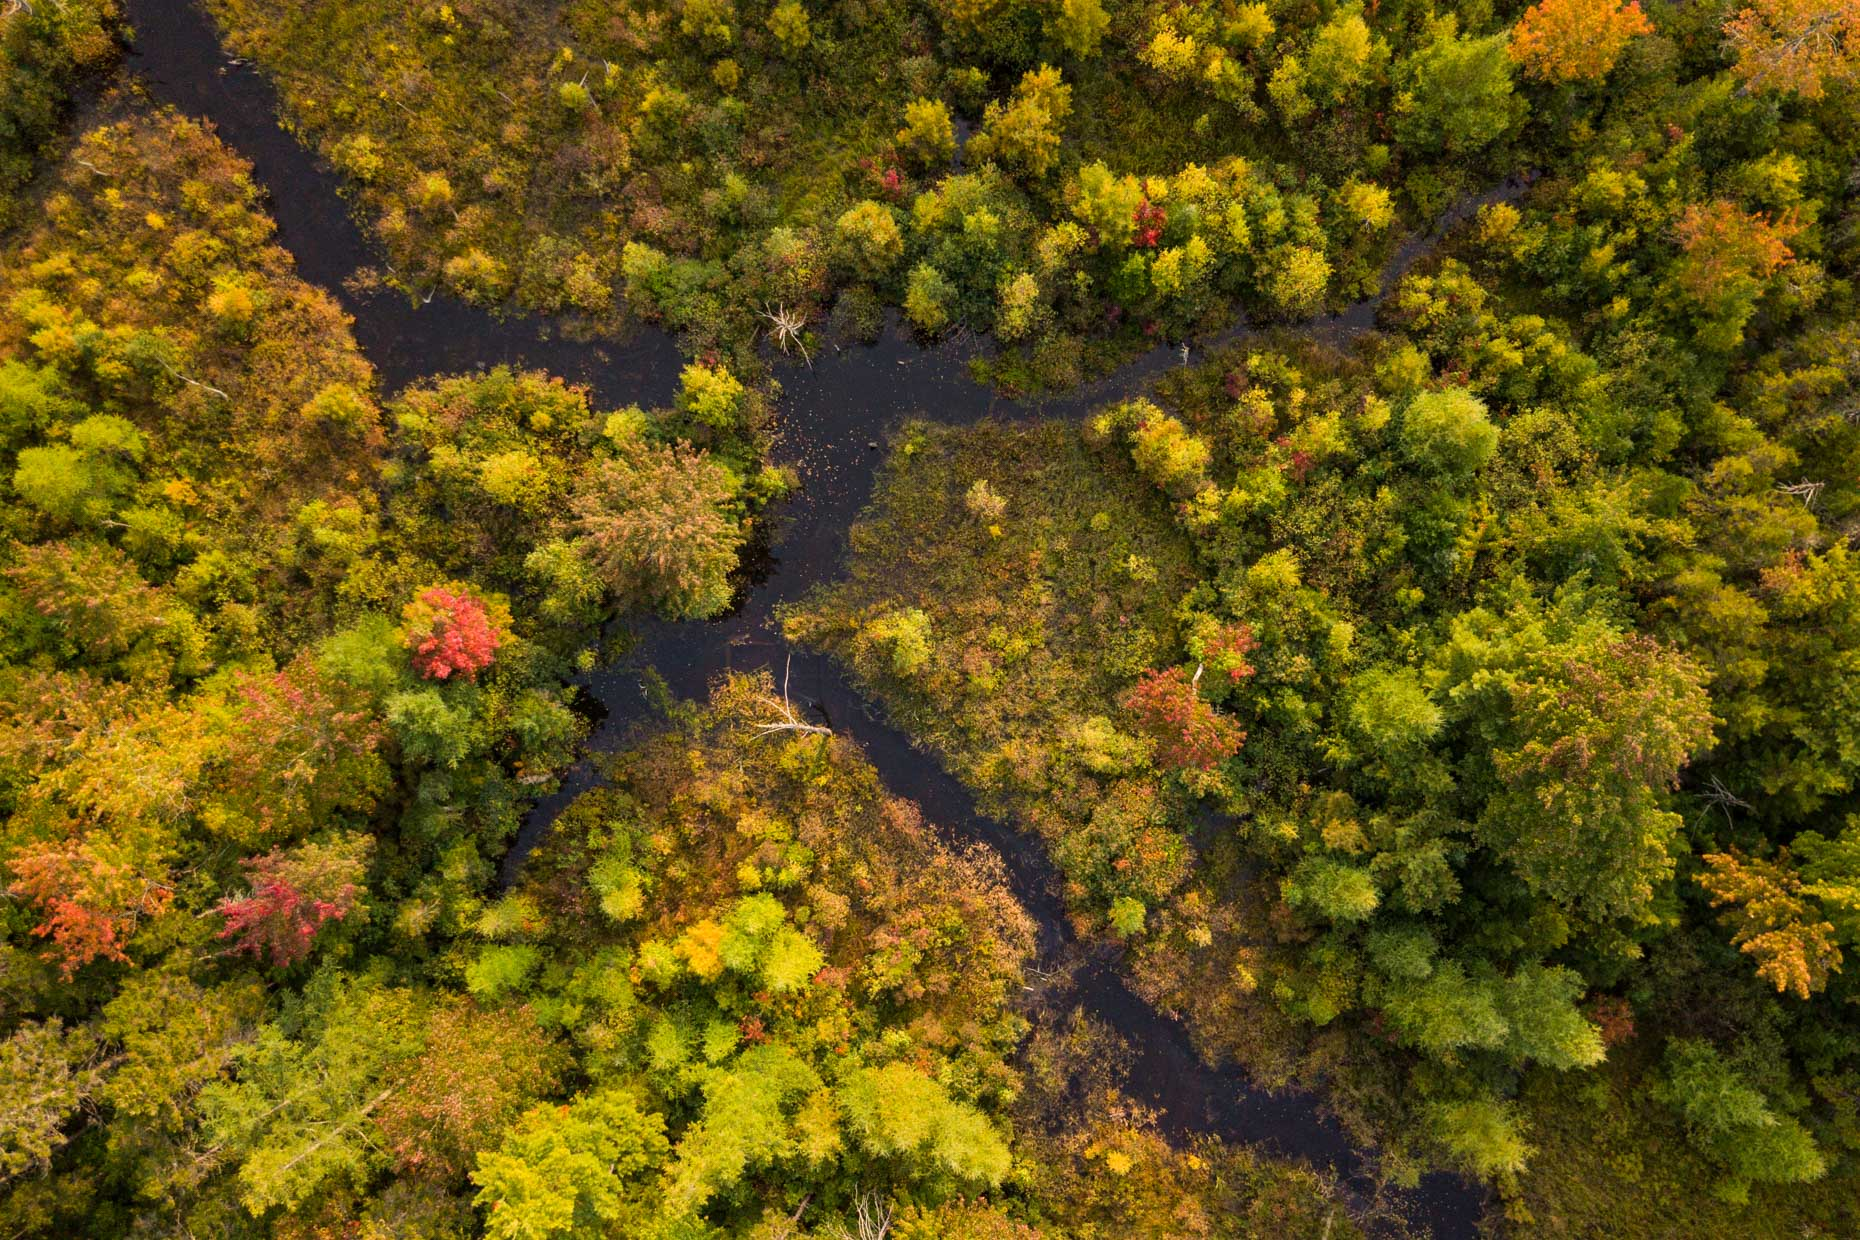 Aerial Photograph of a wetland in autumn